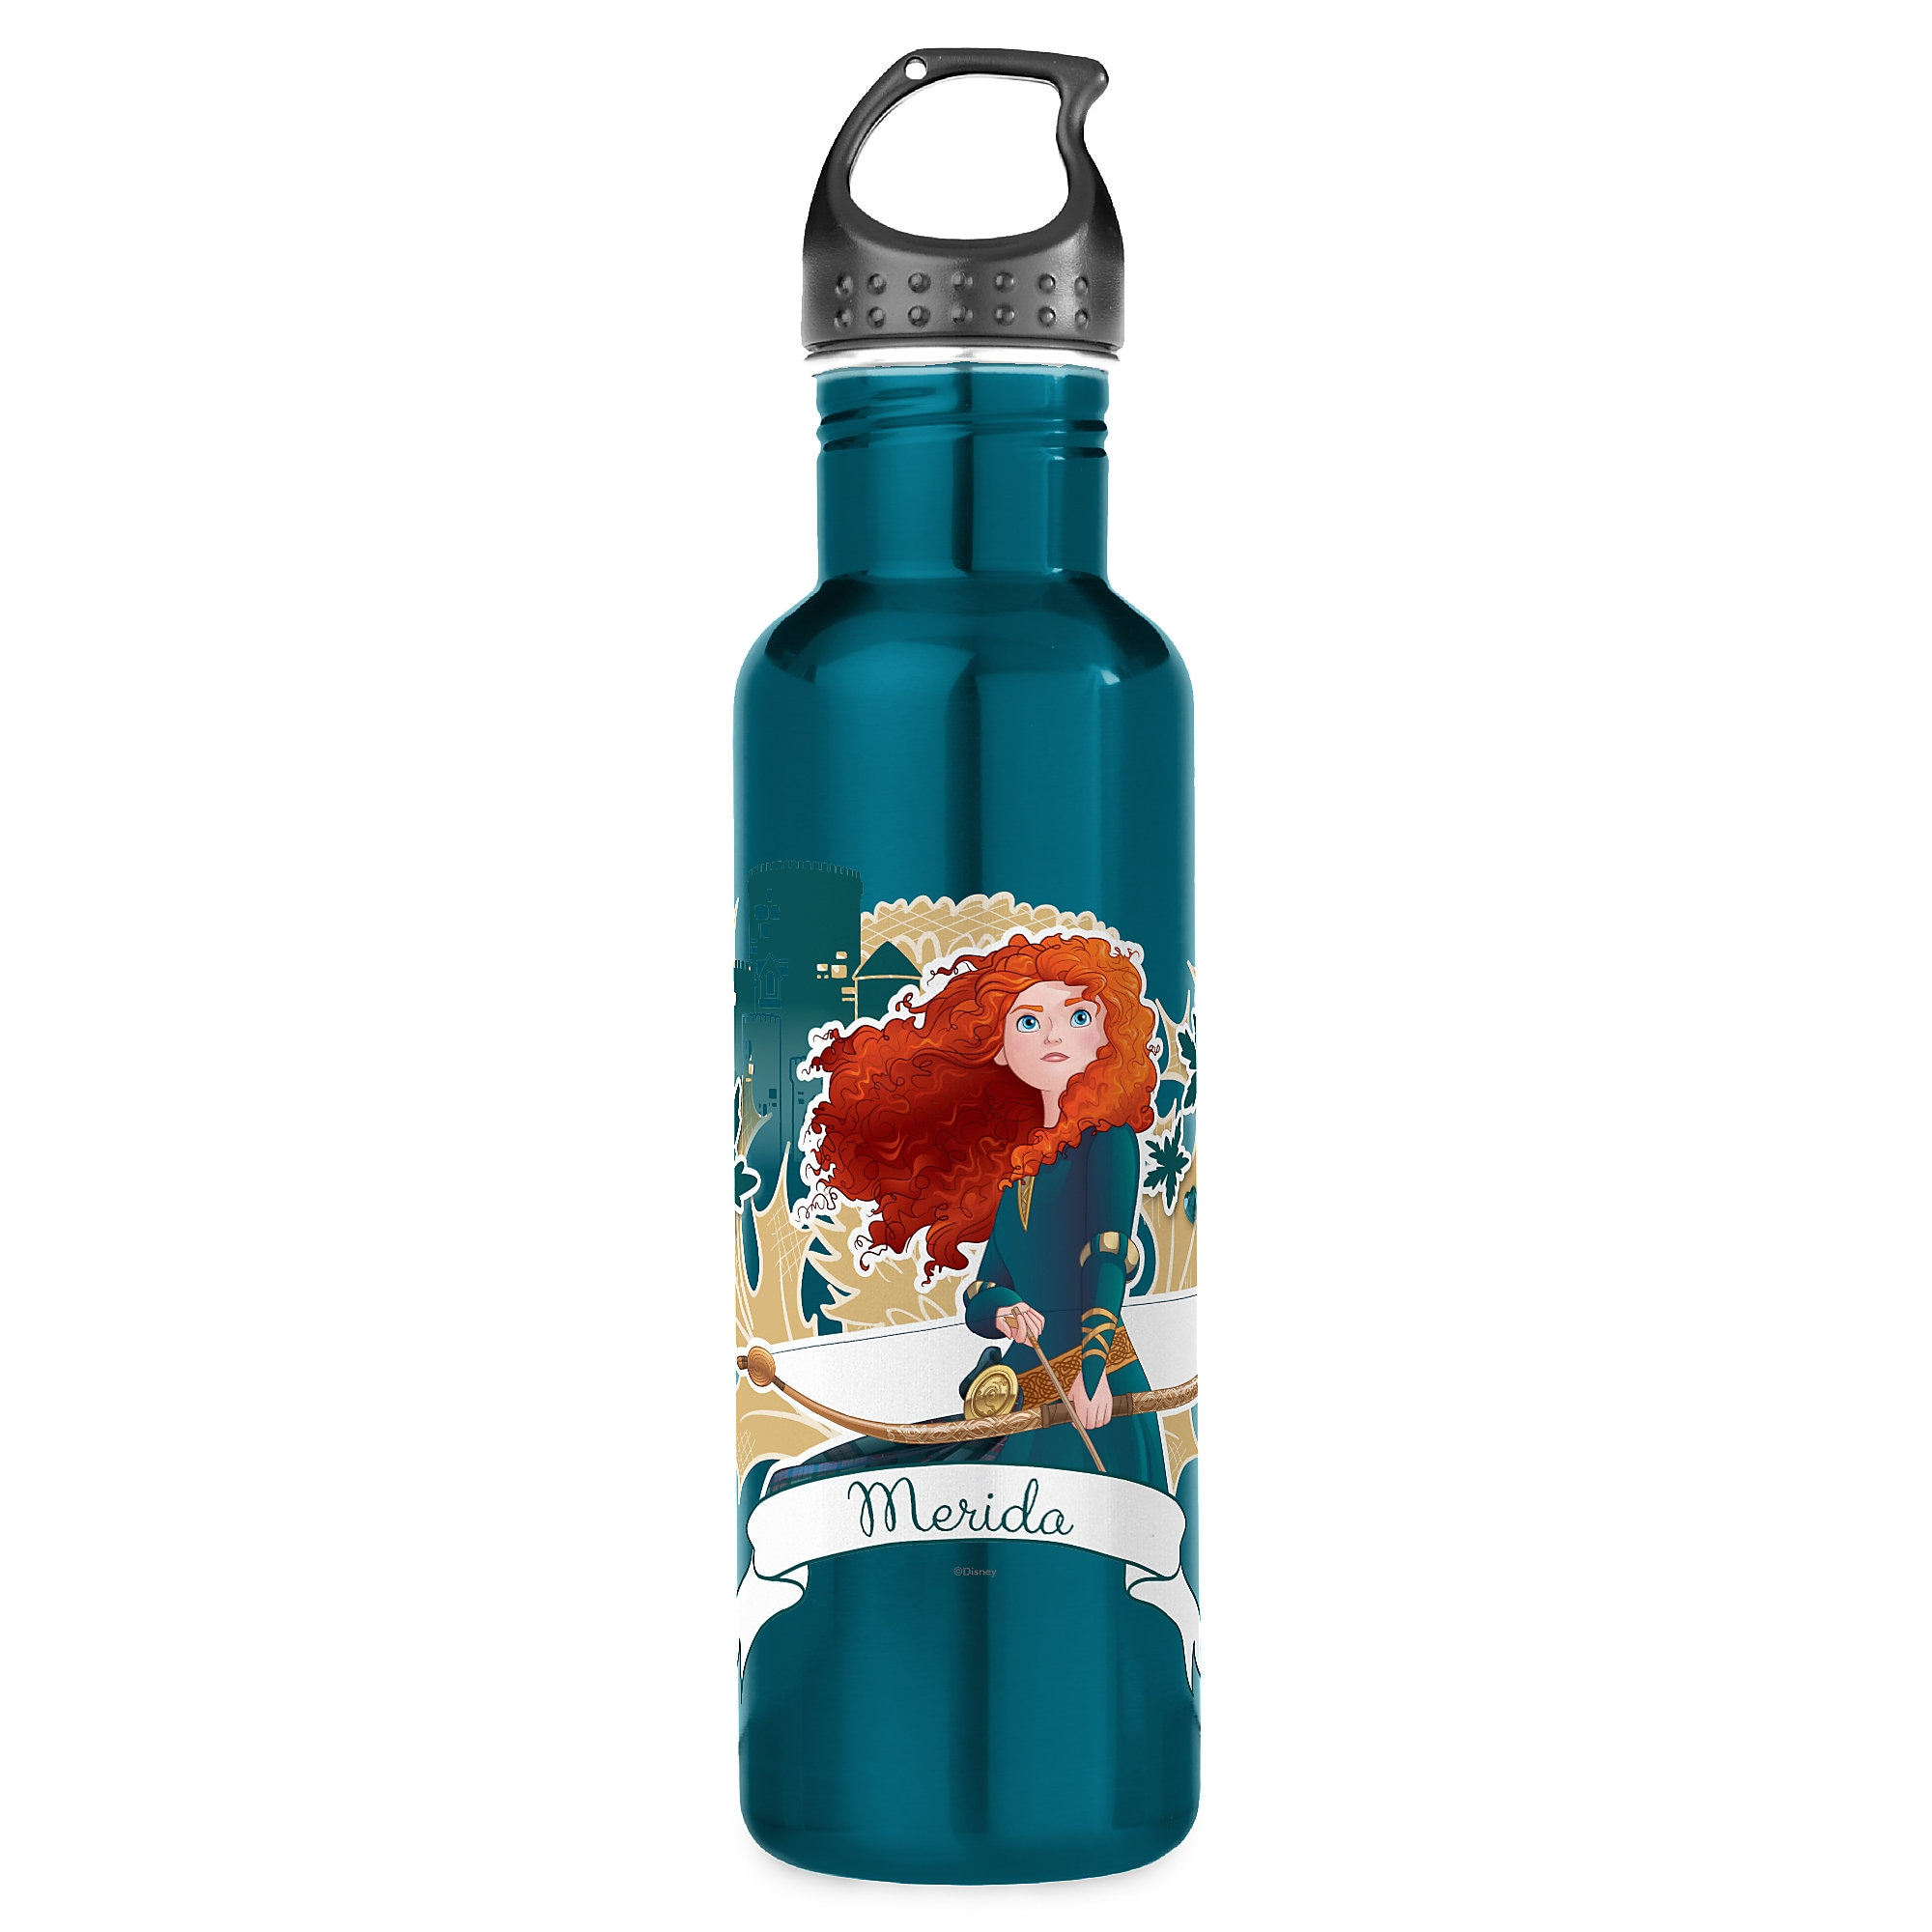 Merida Water Bottle - Customizable